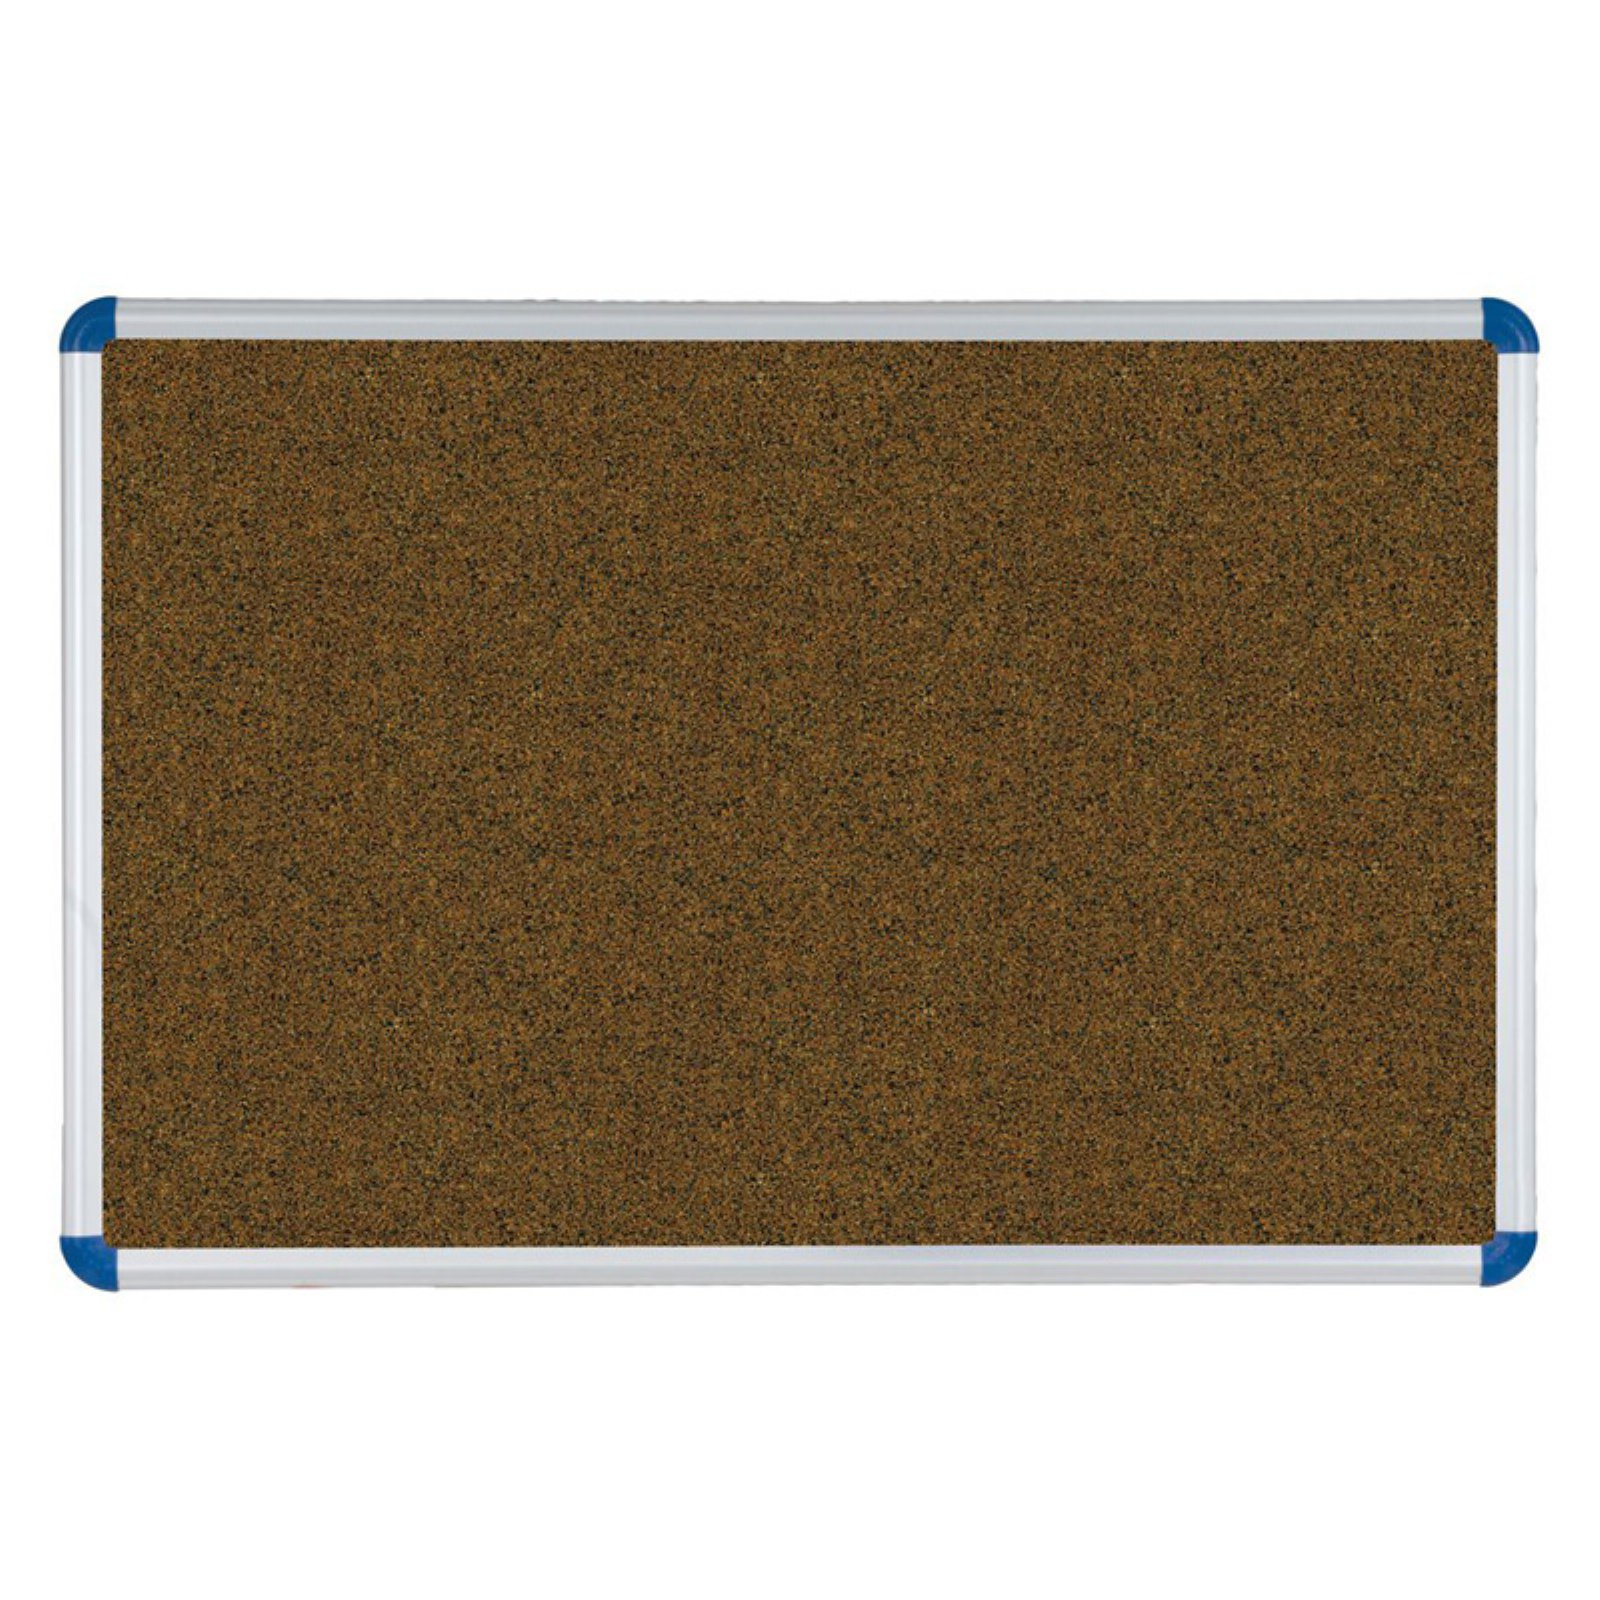 Magne-Rite 24W x 18H in. Aluminum Trim Markerboard - Wall Mounted